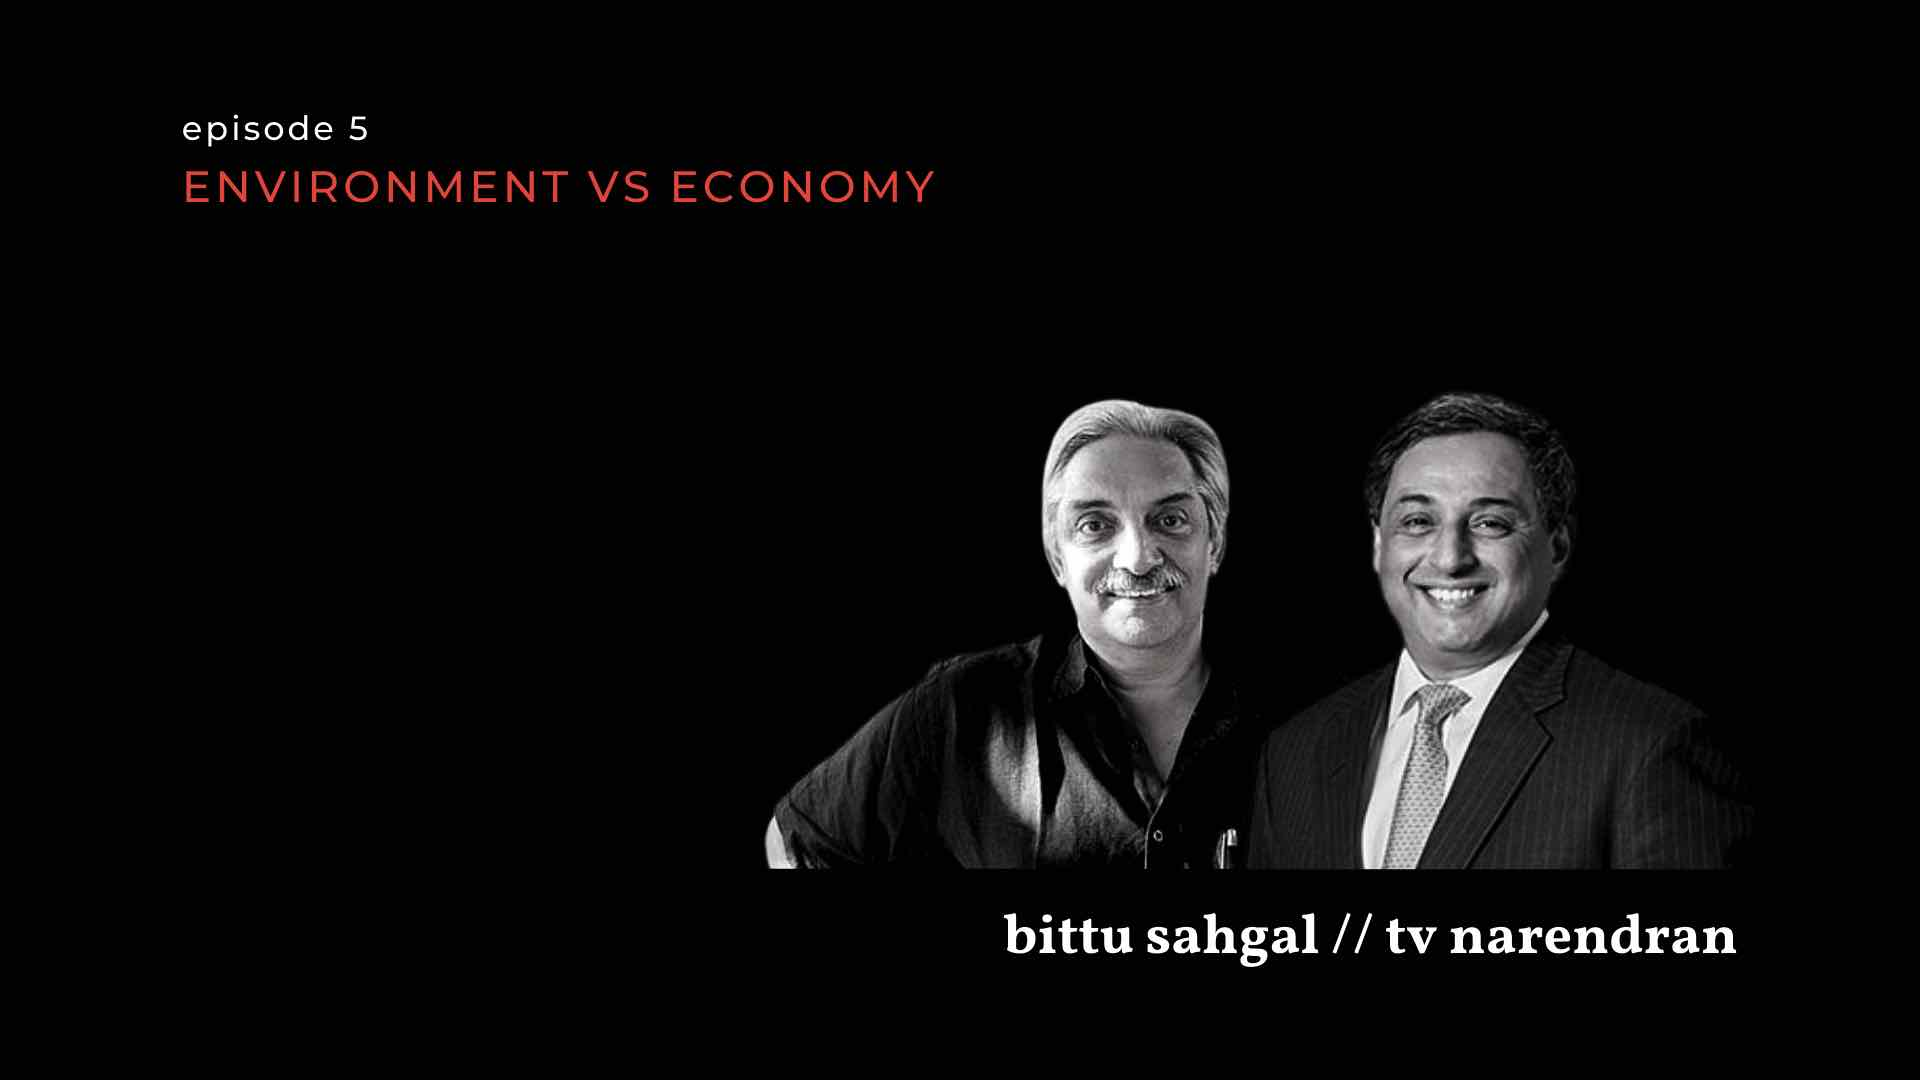 black and white images of Bittu Sahgal and TV Narendran against a black background with the episode title 'Environment vs Economy'-economic growth and environmental sustainability